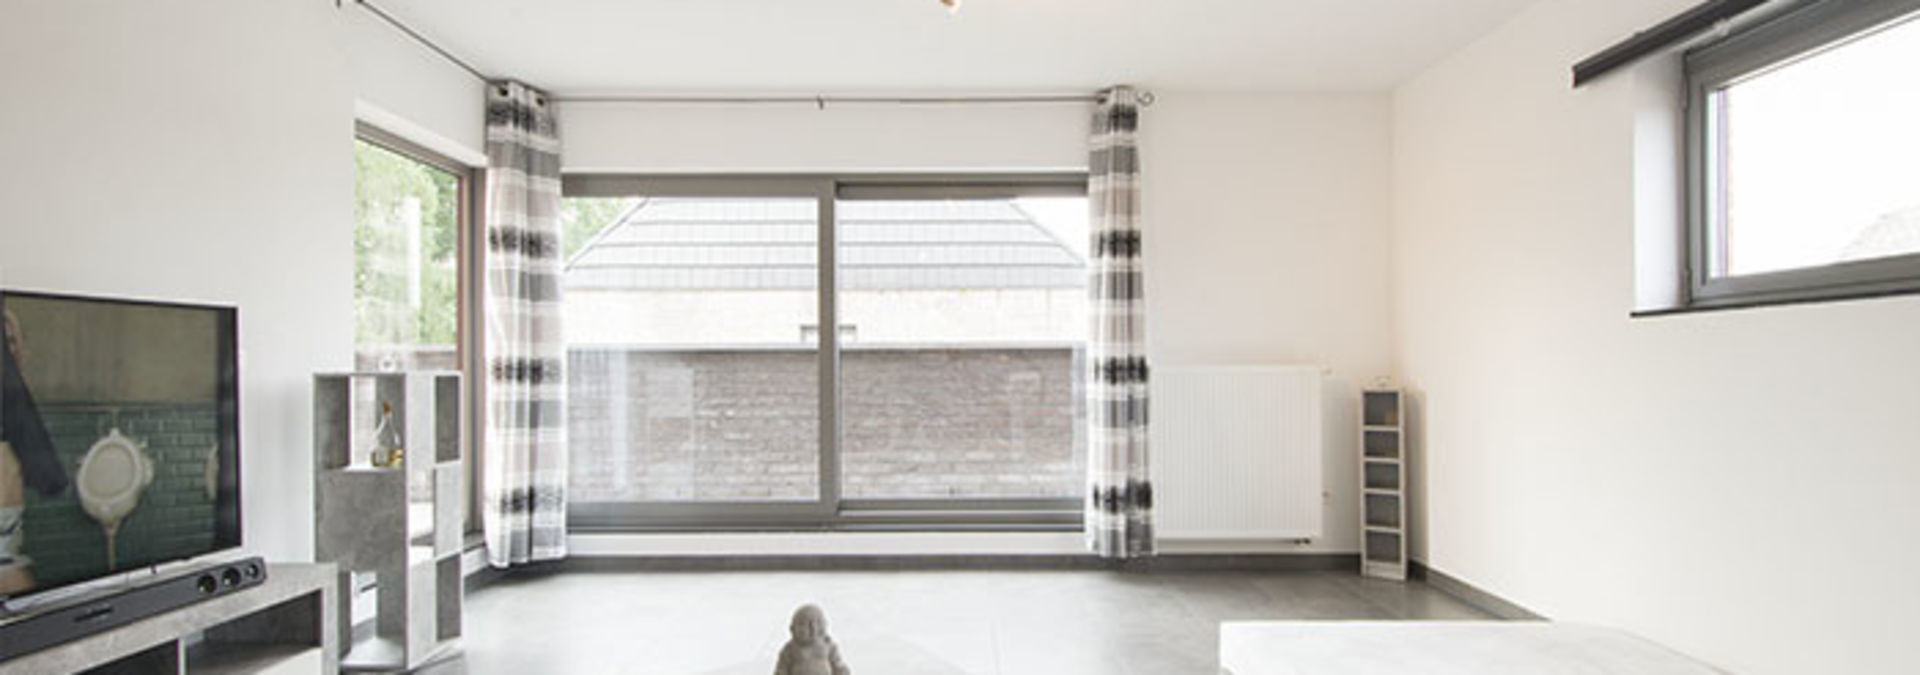 Fantastisch duplex appartement met terras en garage